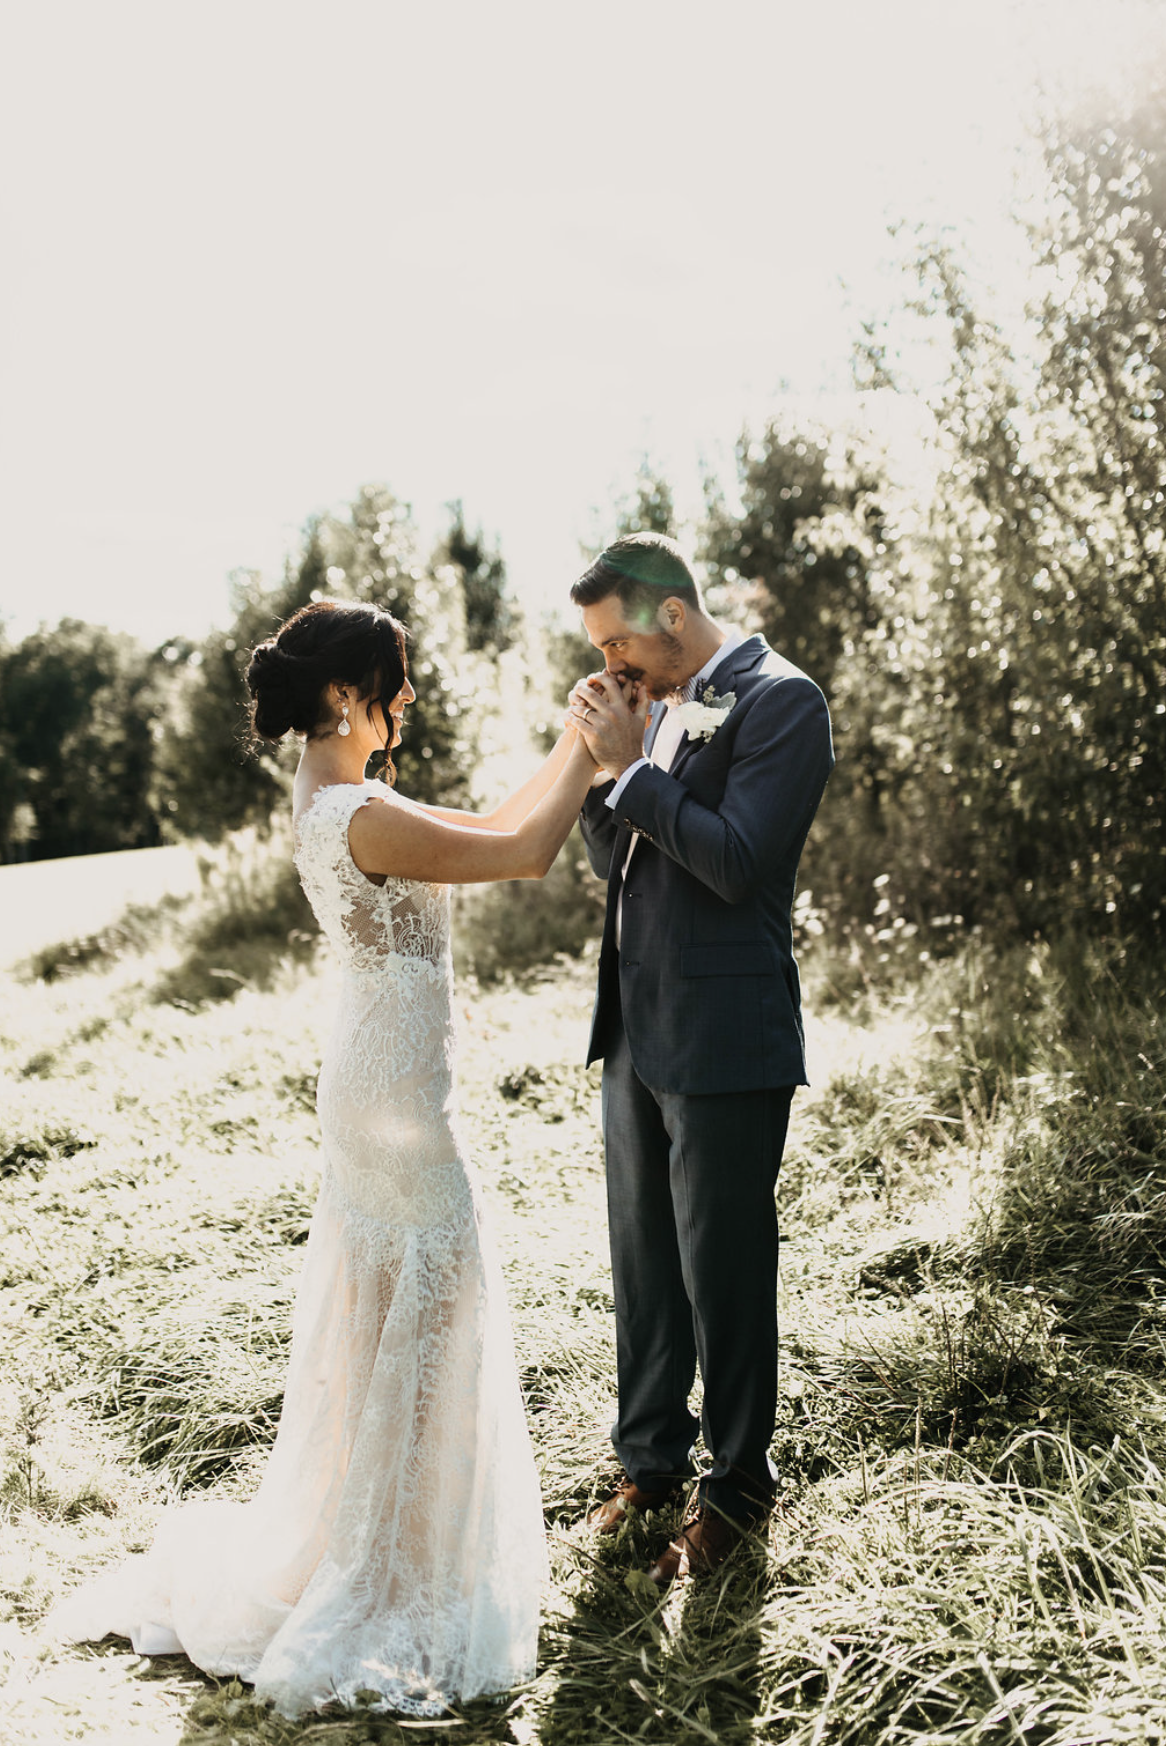 Valerie-and-TJ-McConnell-Wedding-Coordination-by-Cassandra-Clair-Event-Prep-Pittsburgh-Wedding-47.png